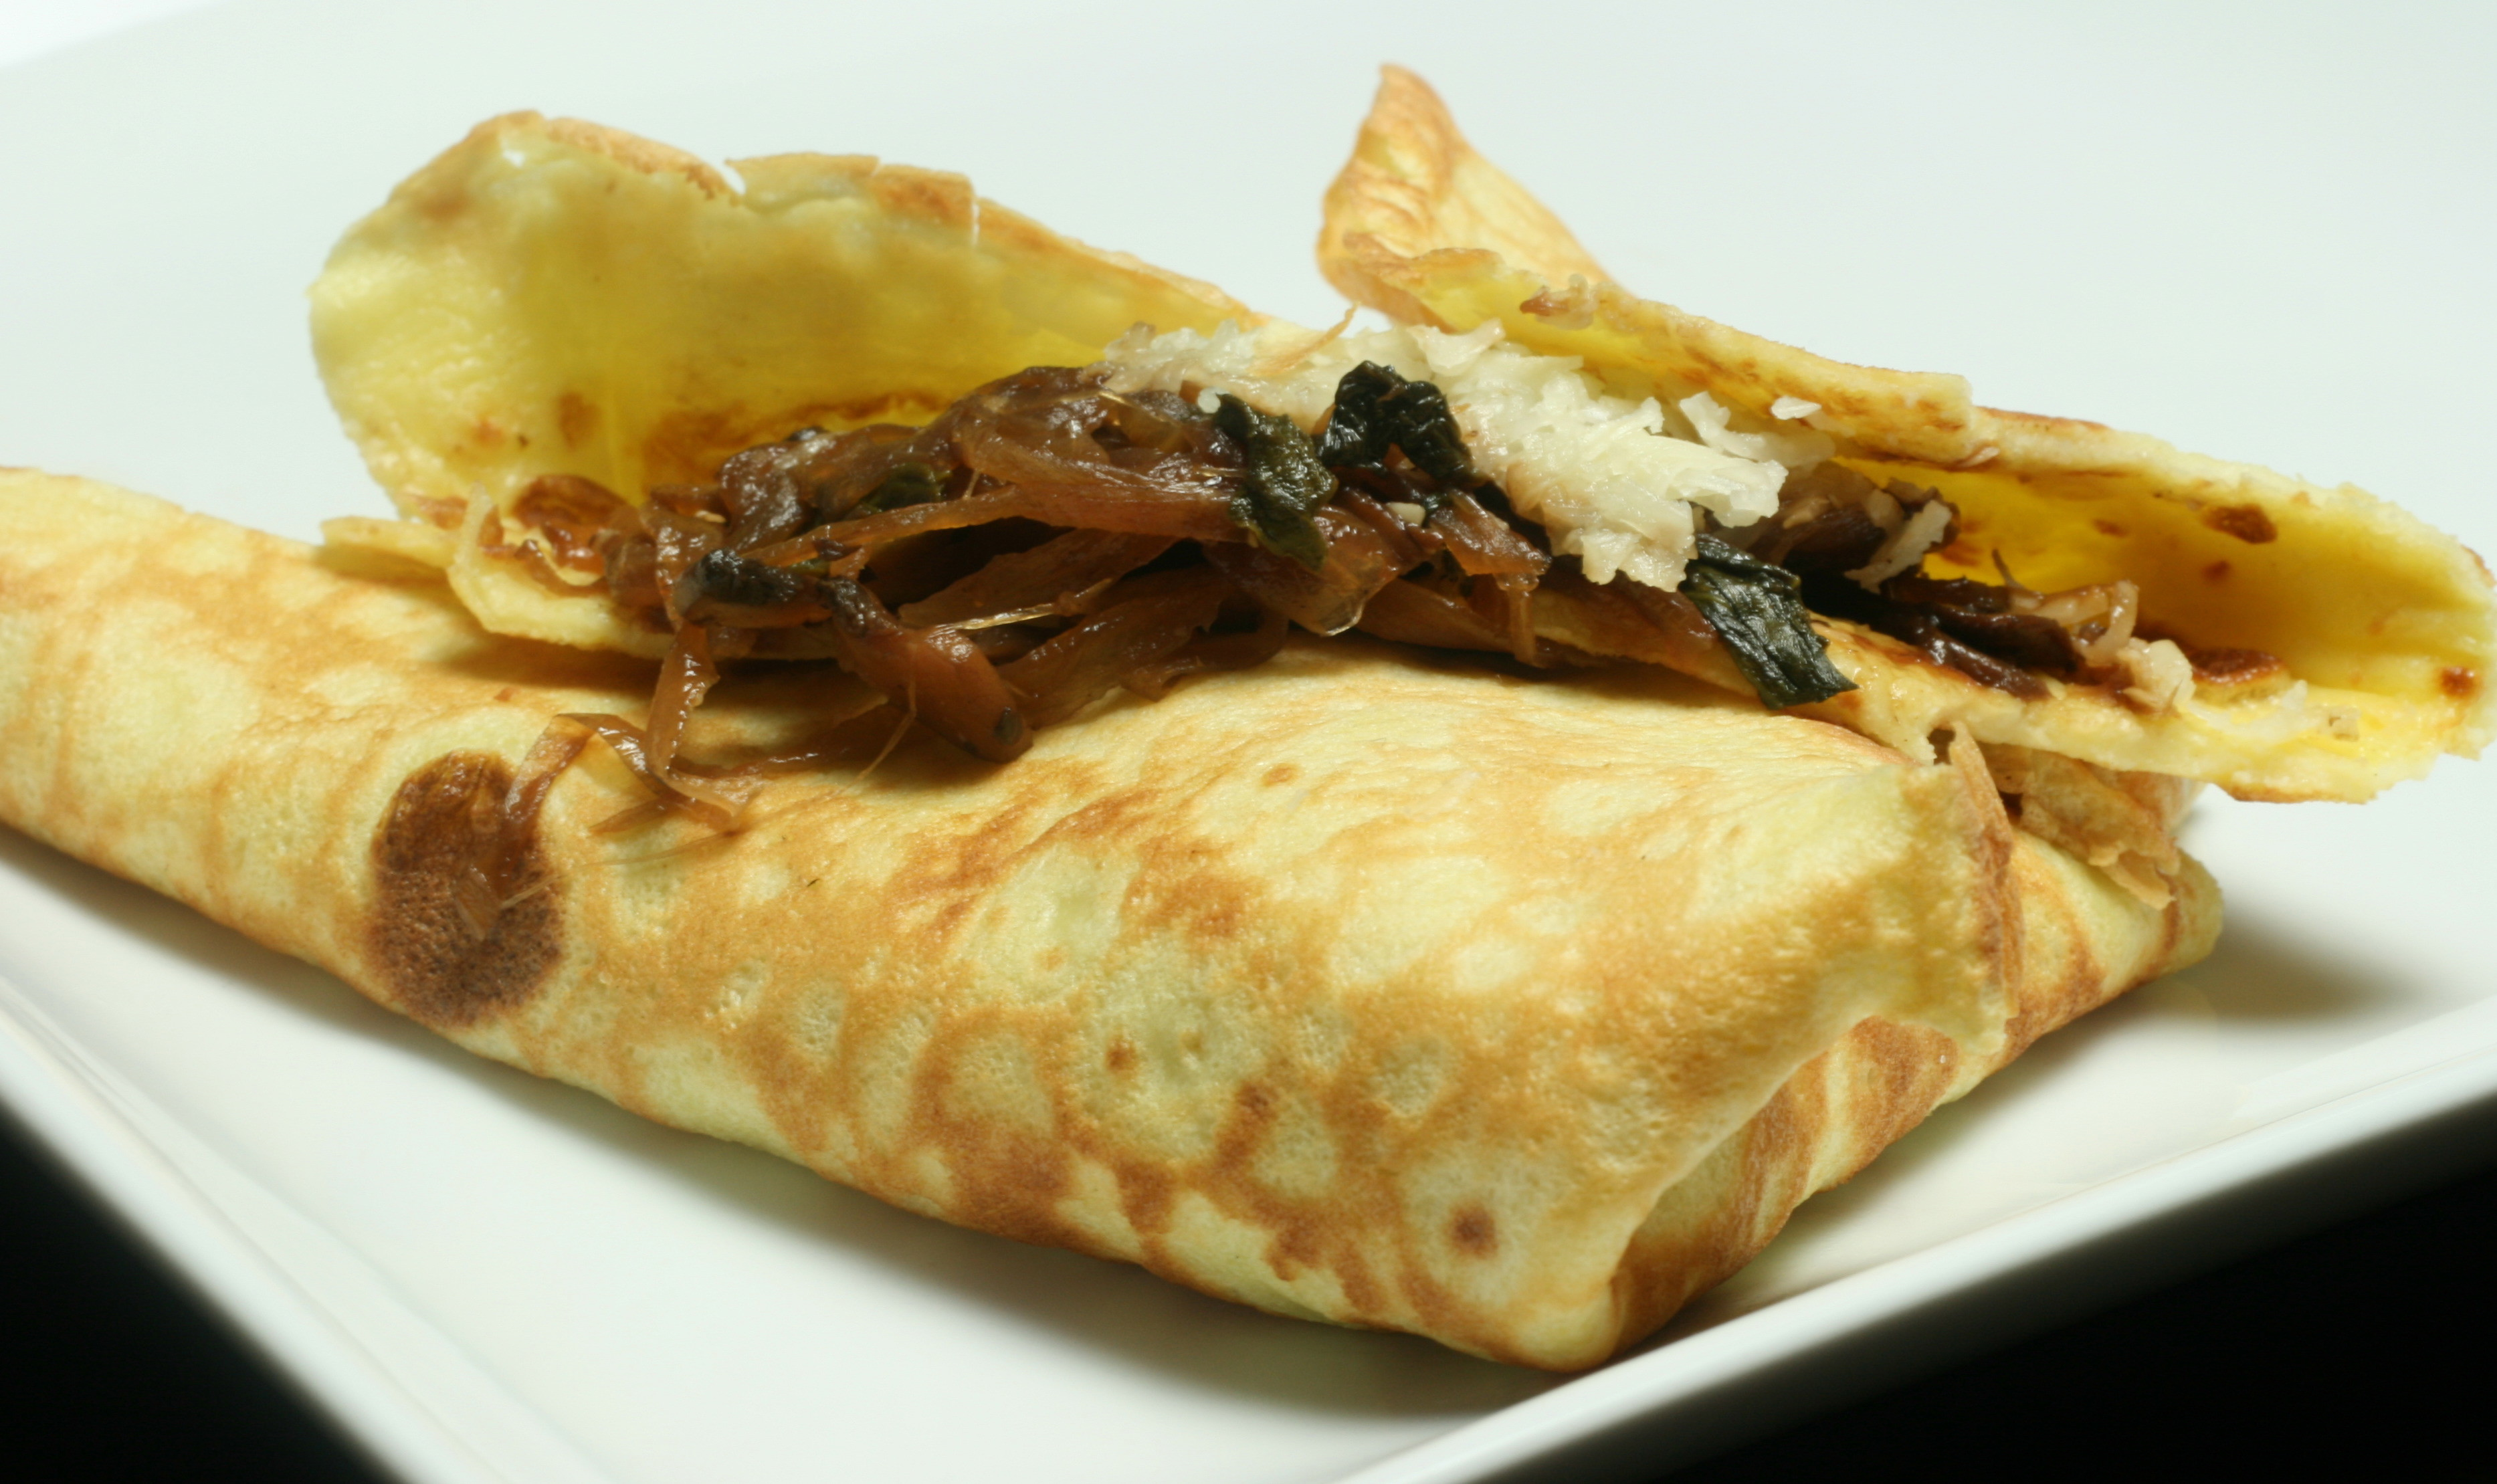 ... Carmelized Onions, Mushrooms and Spinach CREPES | Adventures in Shaw